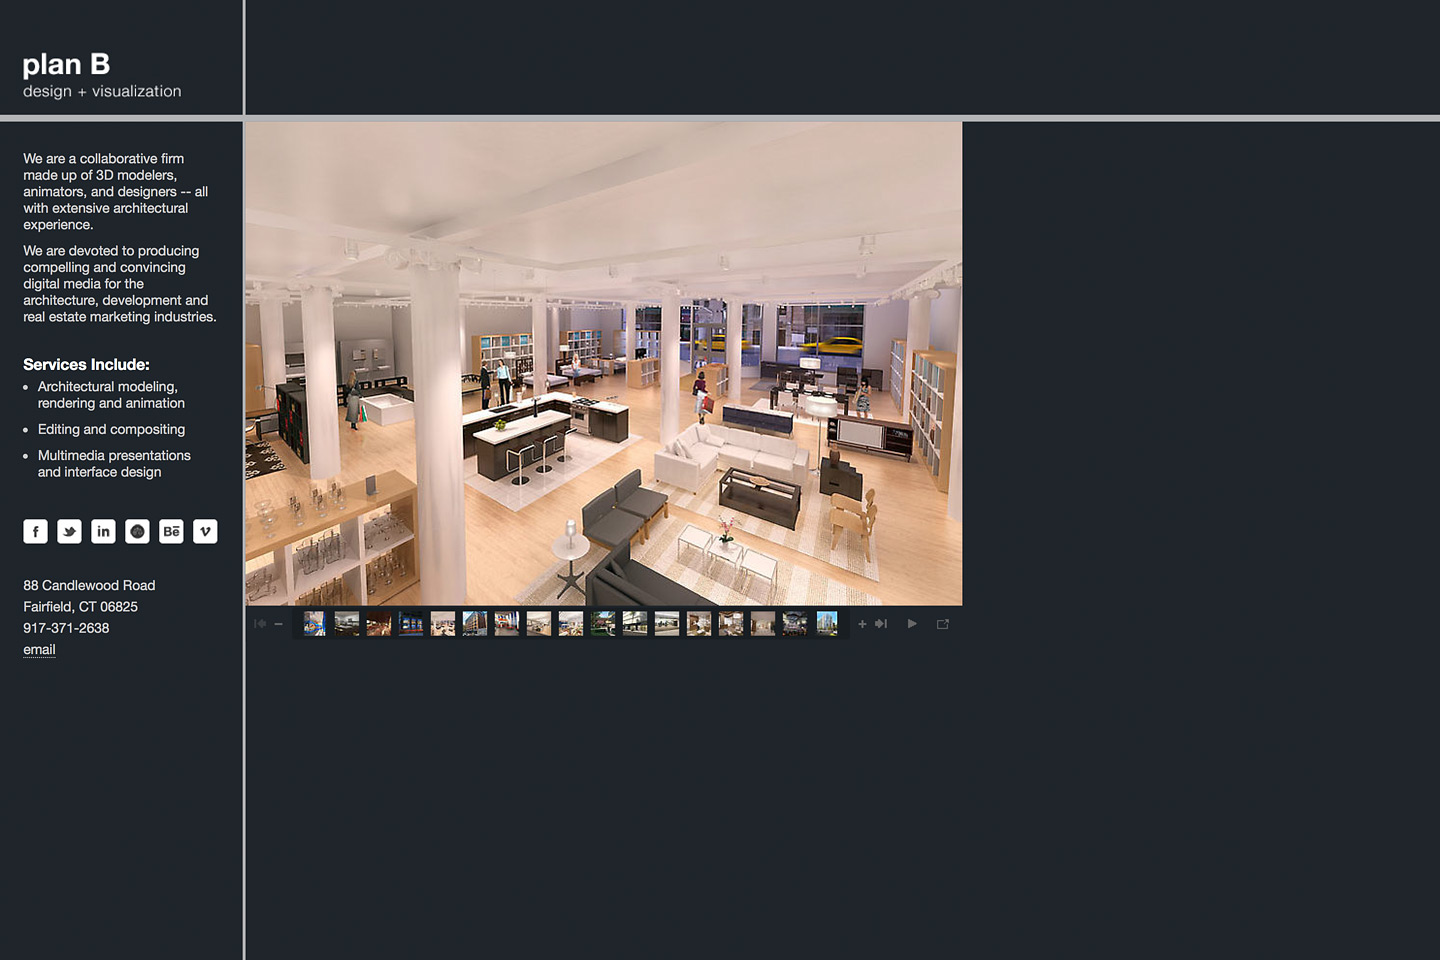 a screen capture of the planbdesign.net website featuring a rendering of a retail store simulation in a vacant retail space, rendered for purposes of attracting a new lease tenant